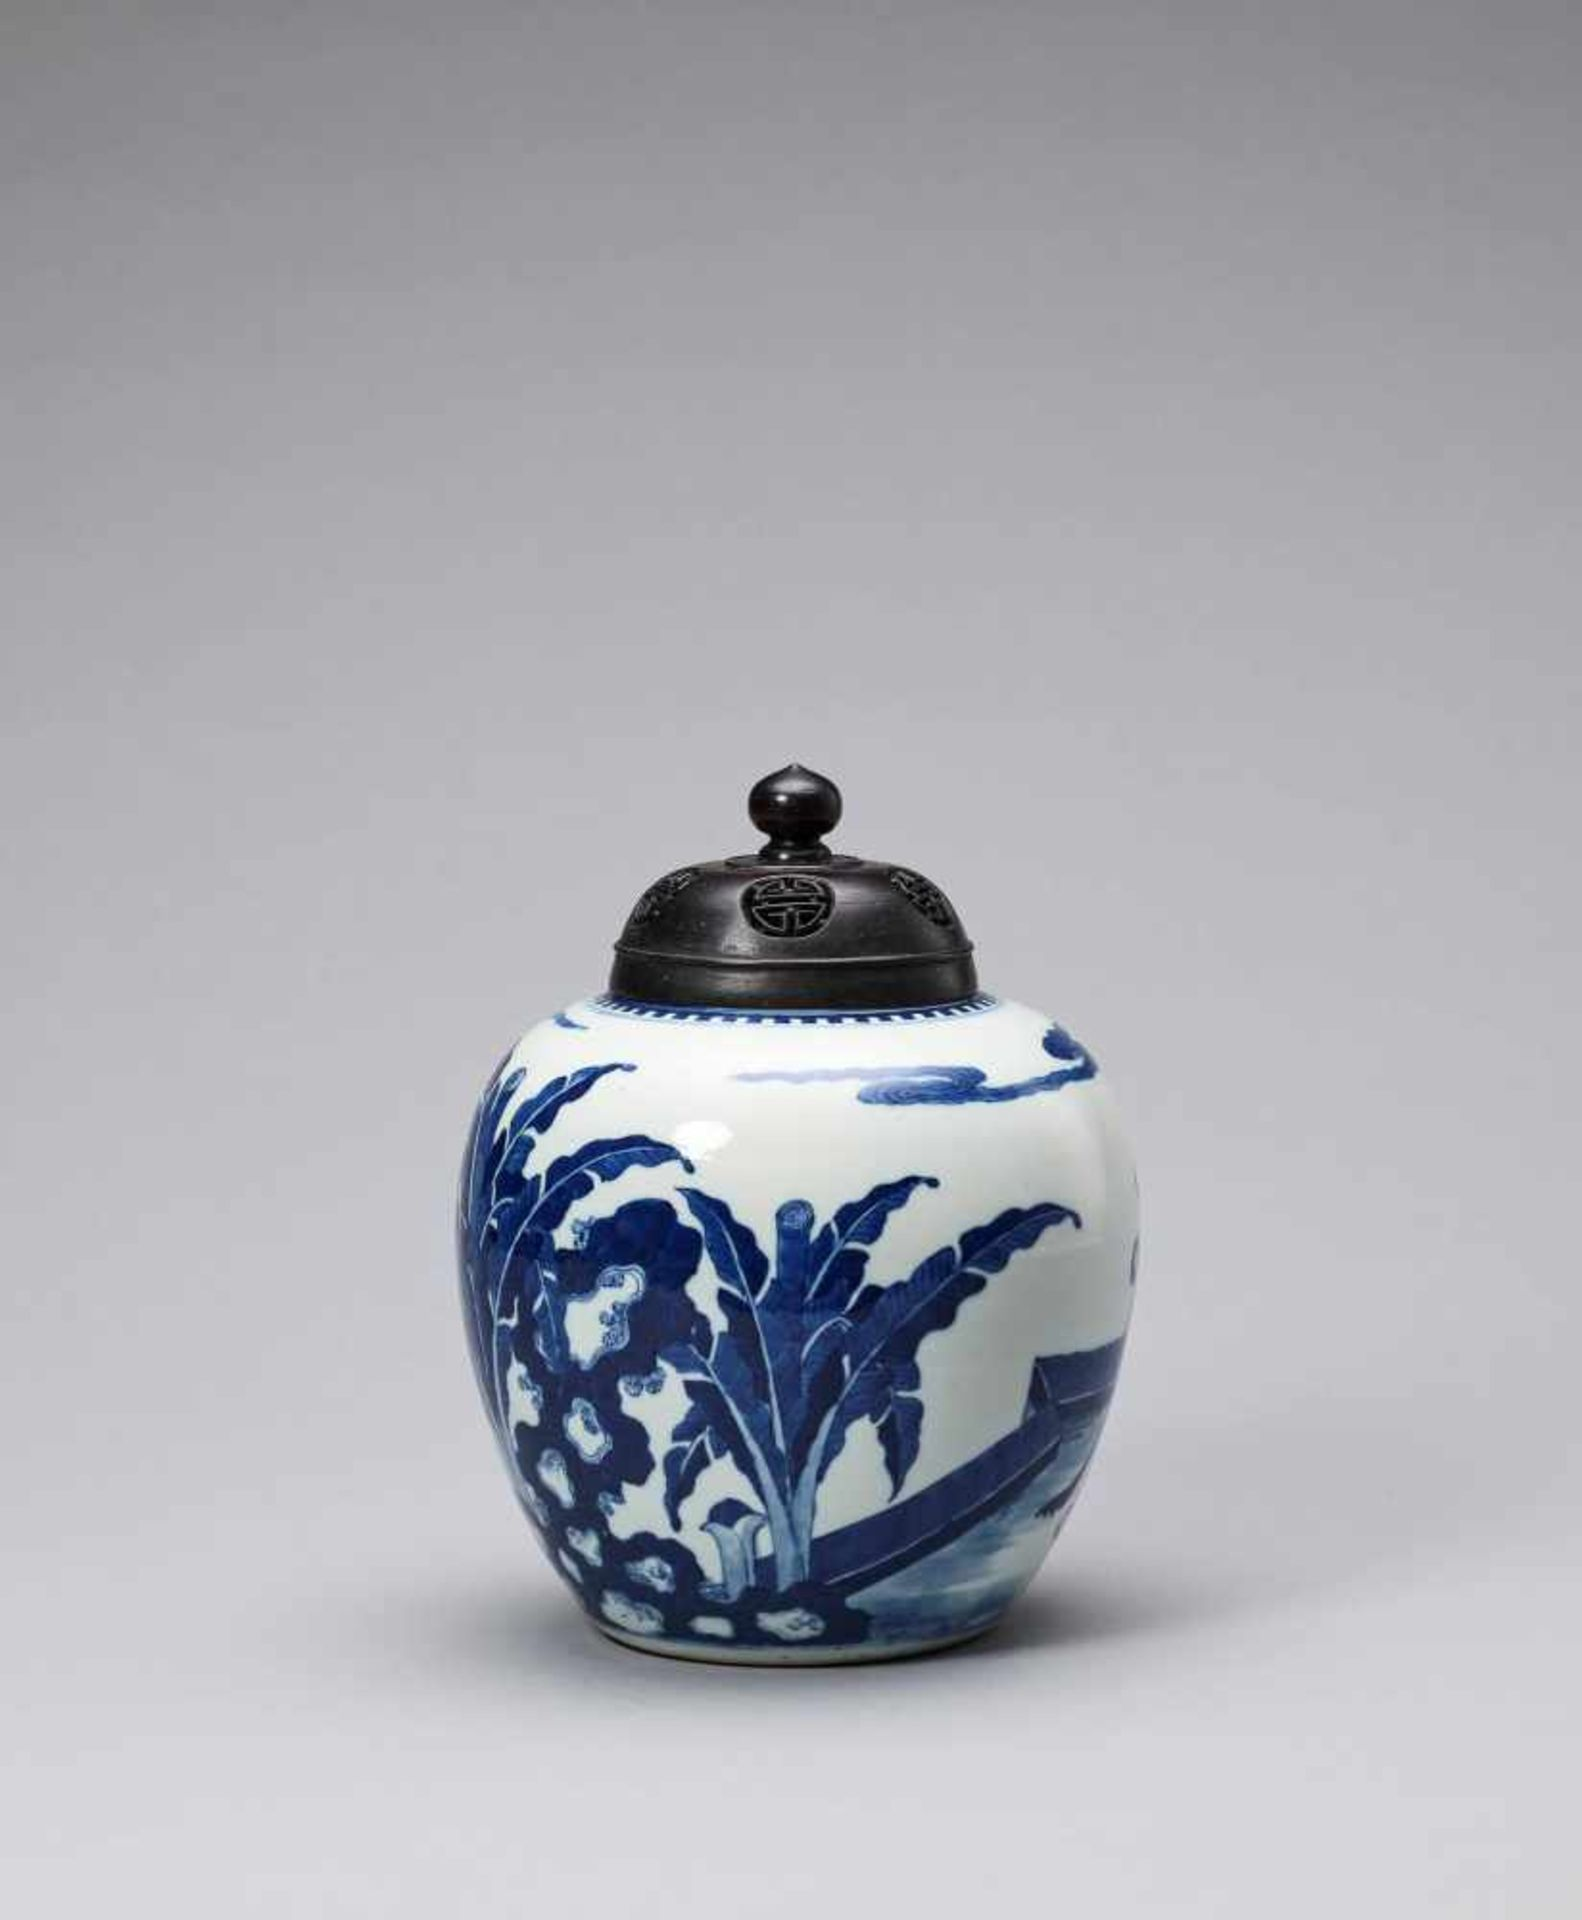 Los 438 - A BLUE AND WHITE GINGER JAR, QING